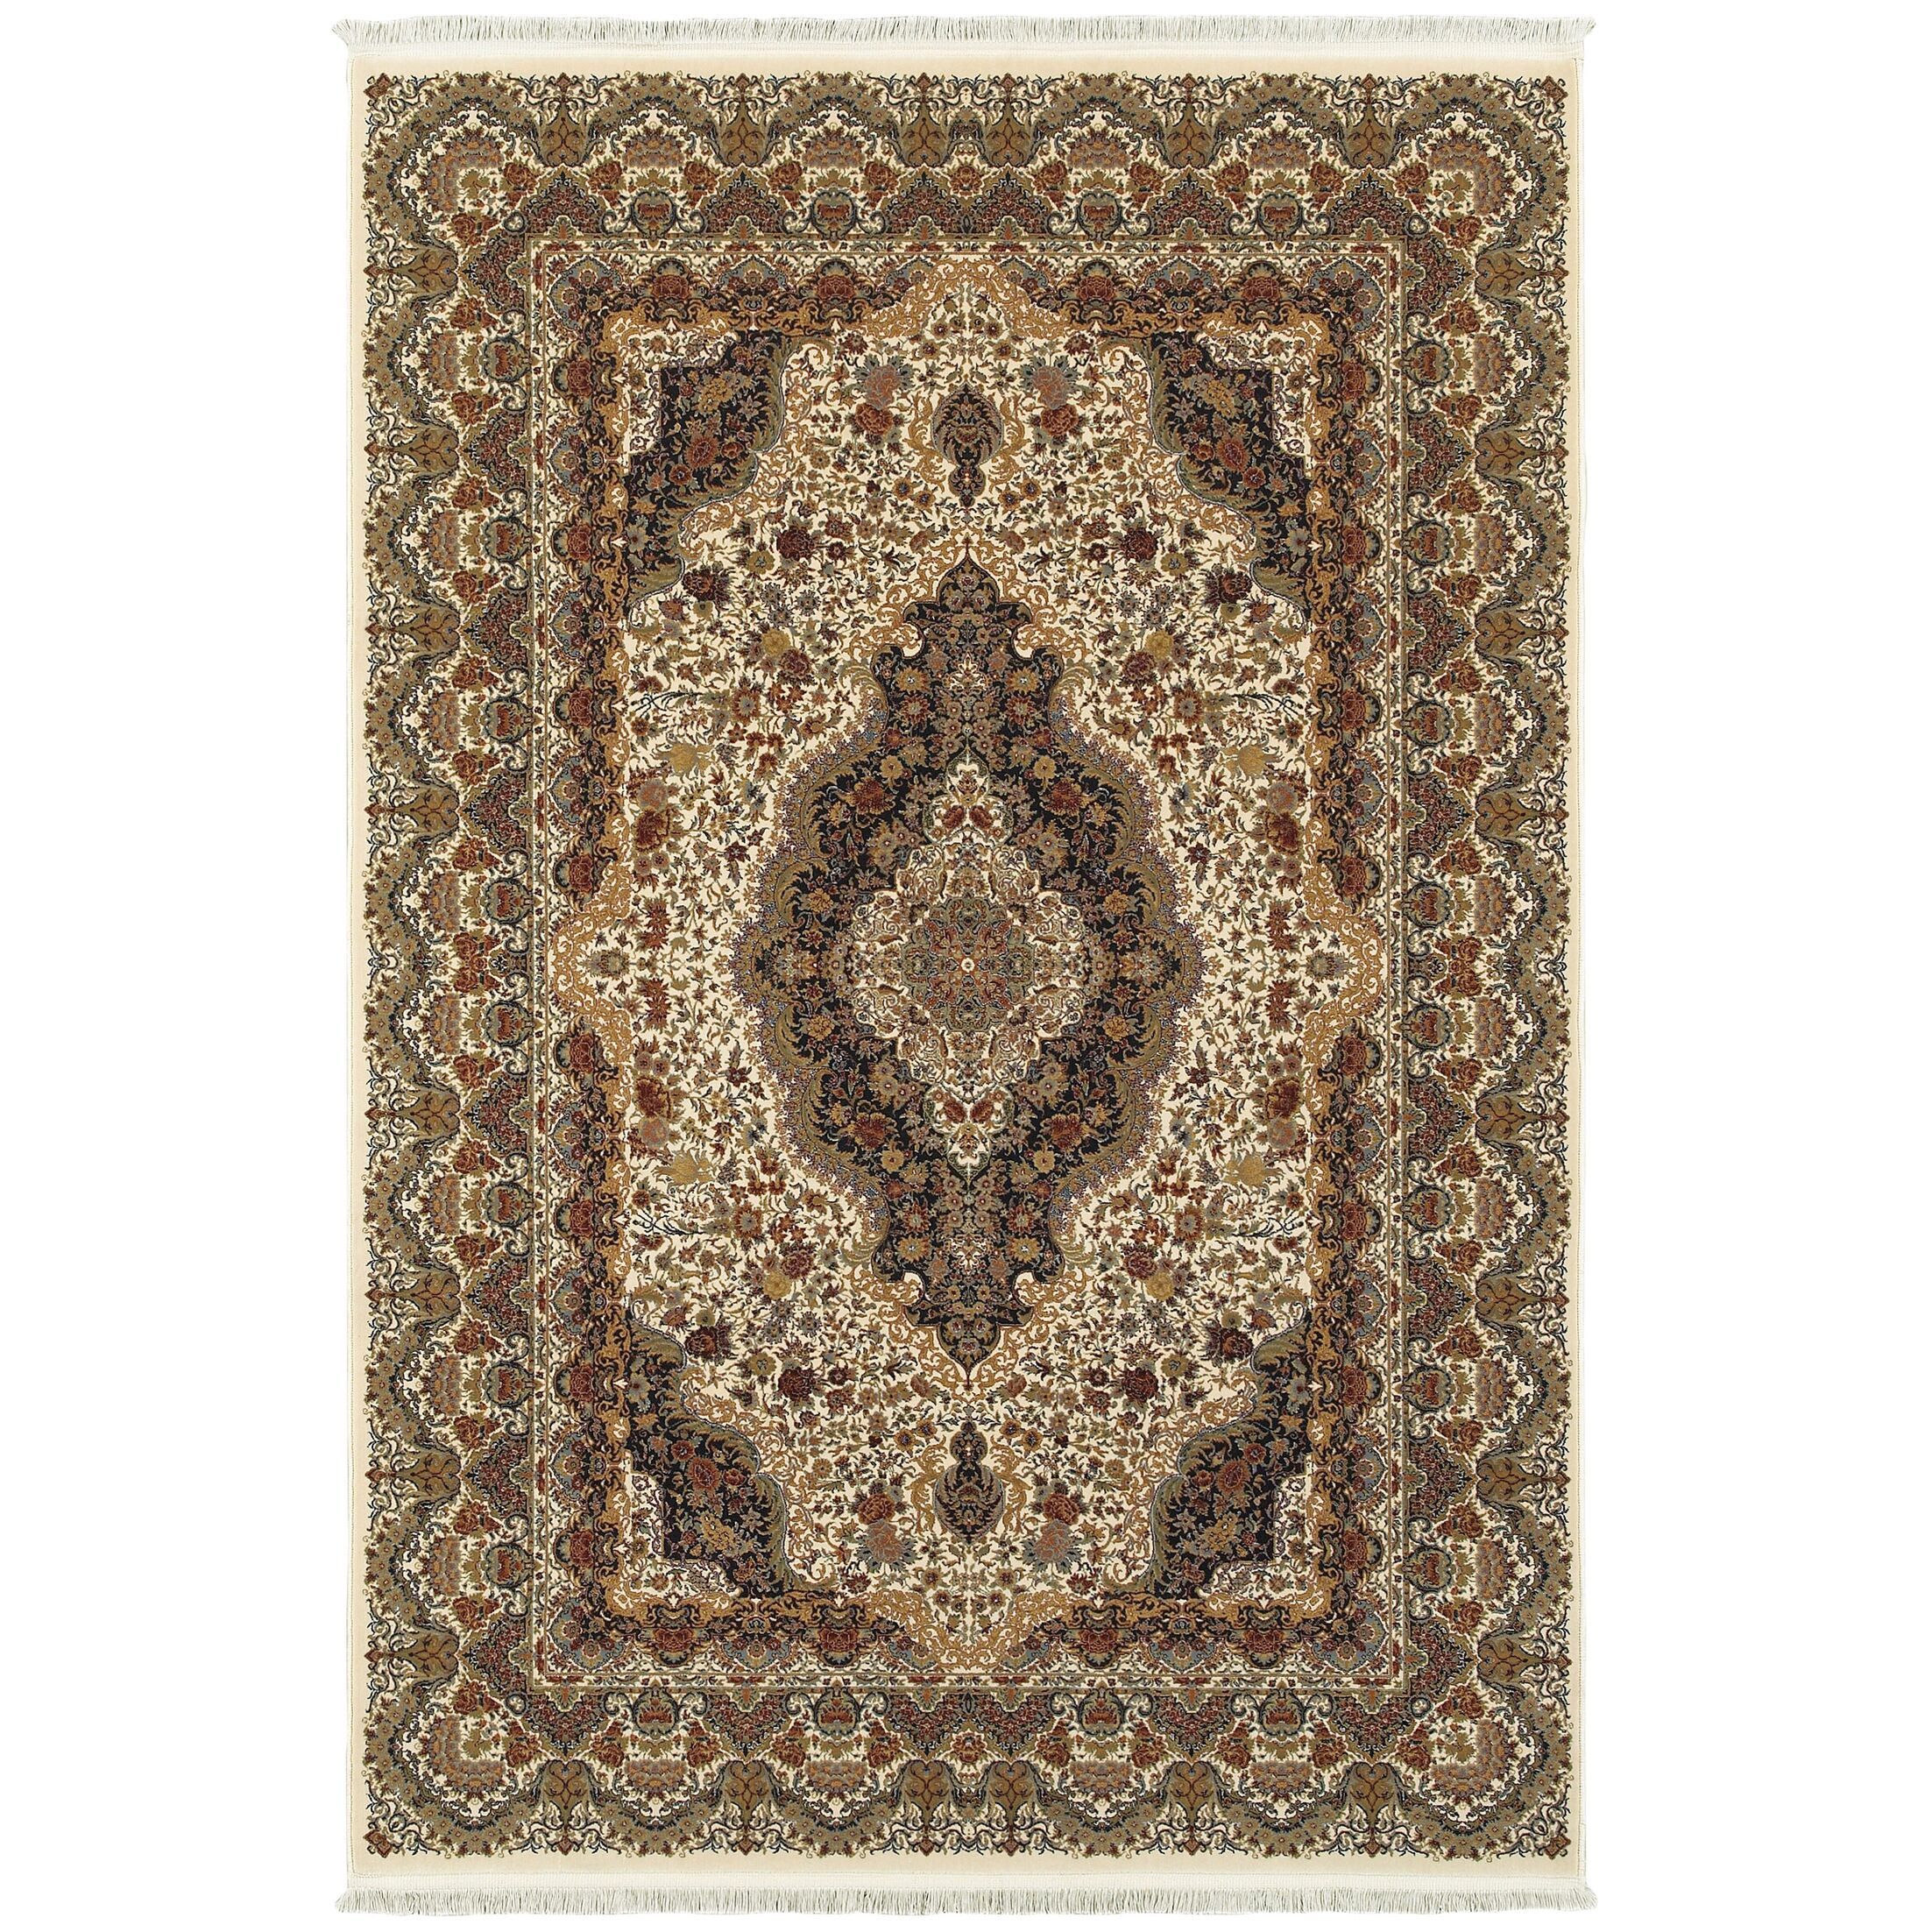 Knepp Sophisticated Medallion Ivory/Brown Area Rug Rug Size: Rectangle 7'10